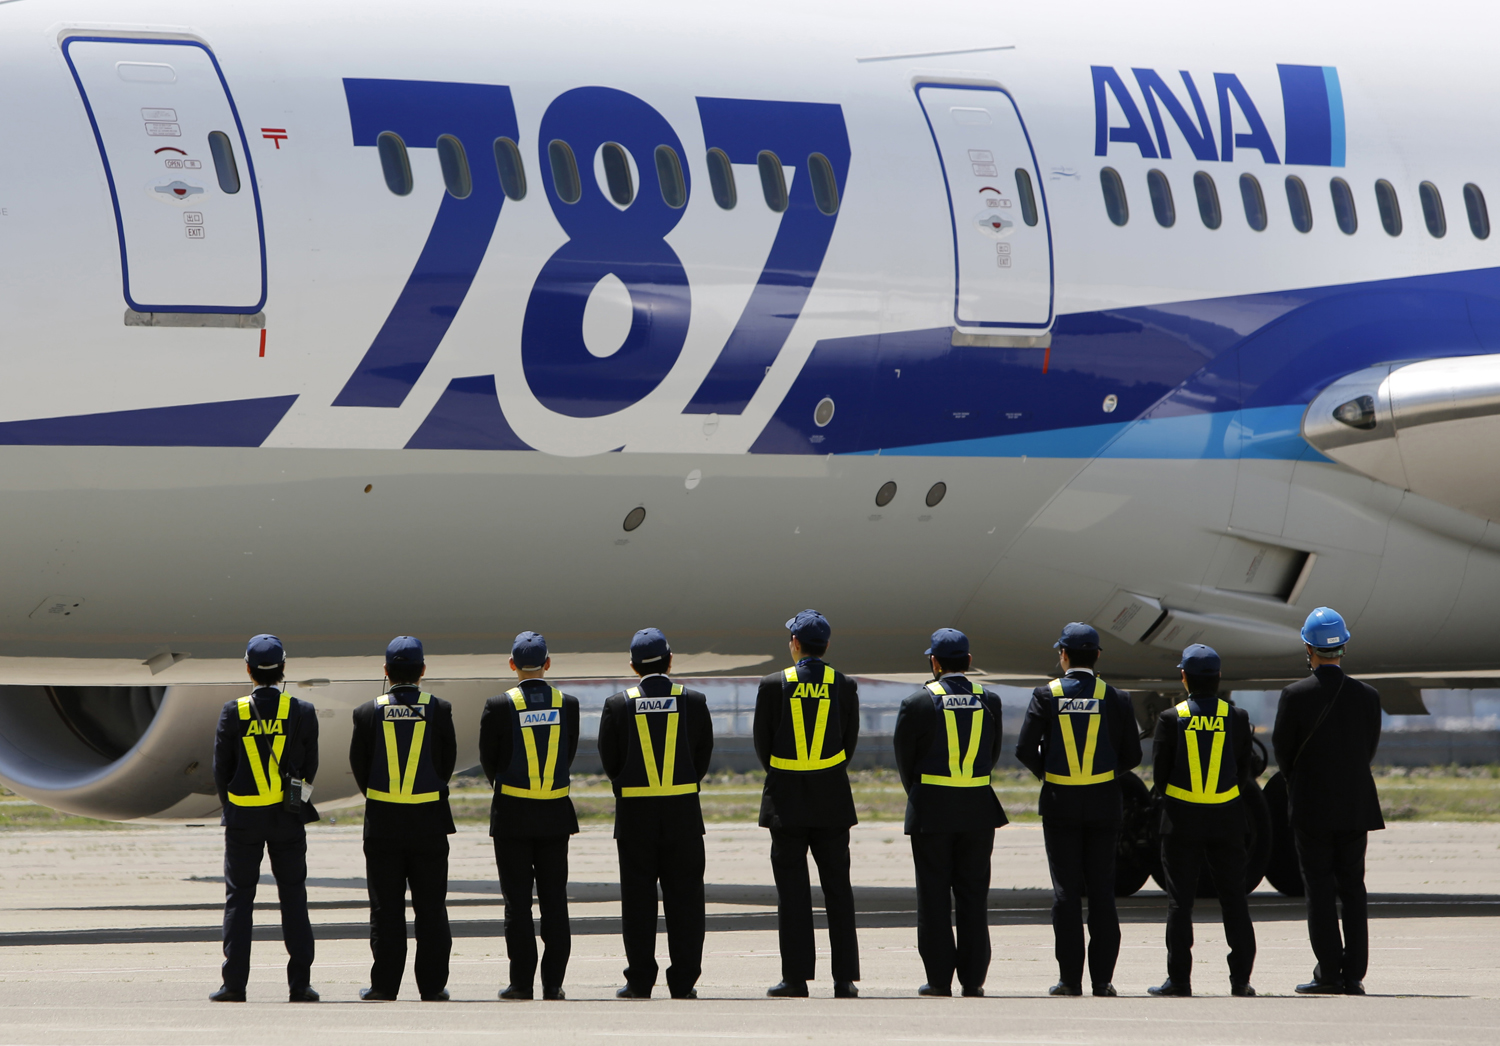 All Nippon Airways' employees stand in front of the company's Boeing 787 Dreamliner plane after it's test flight at Haneda airport in Tokyo on April 28, 2013